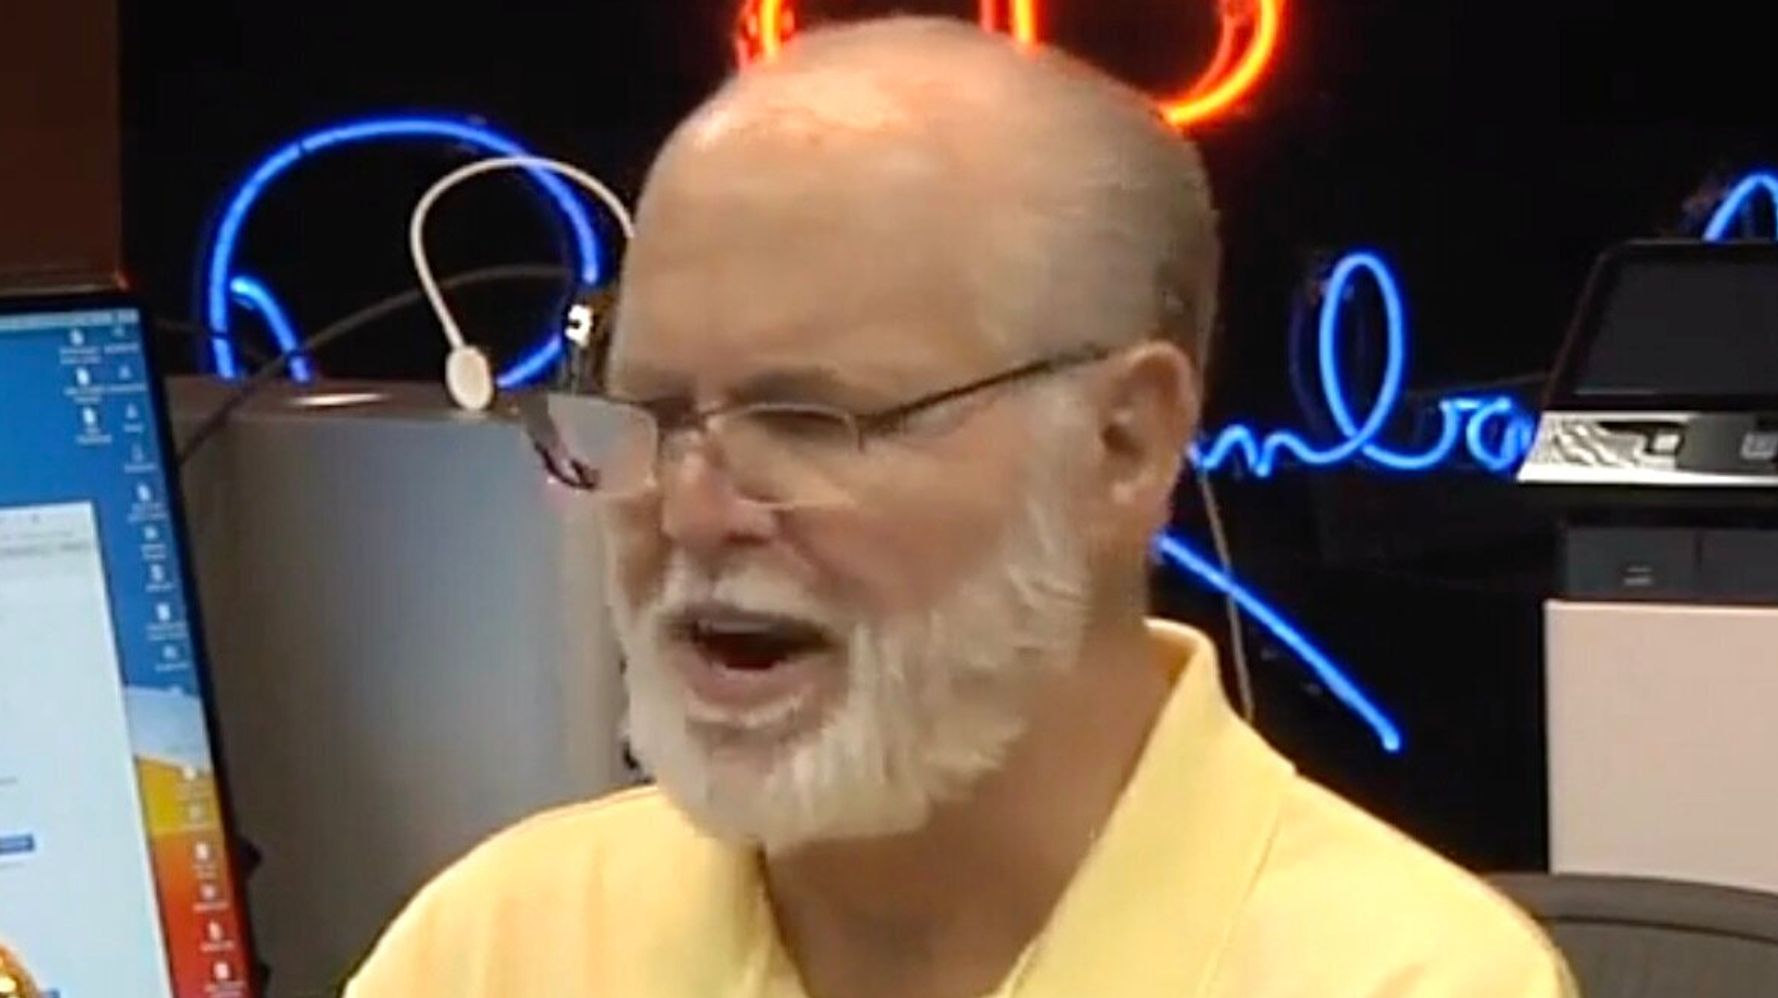 Rush Limbaugh Gets Extra Weird, References Cannibalism In Coronavirus Rant 1